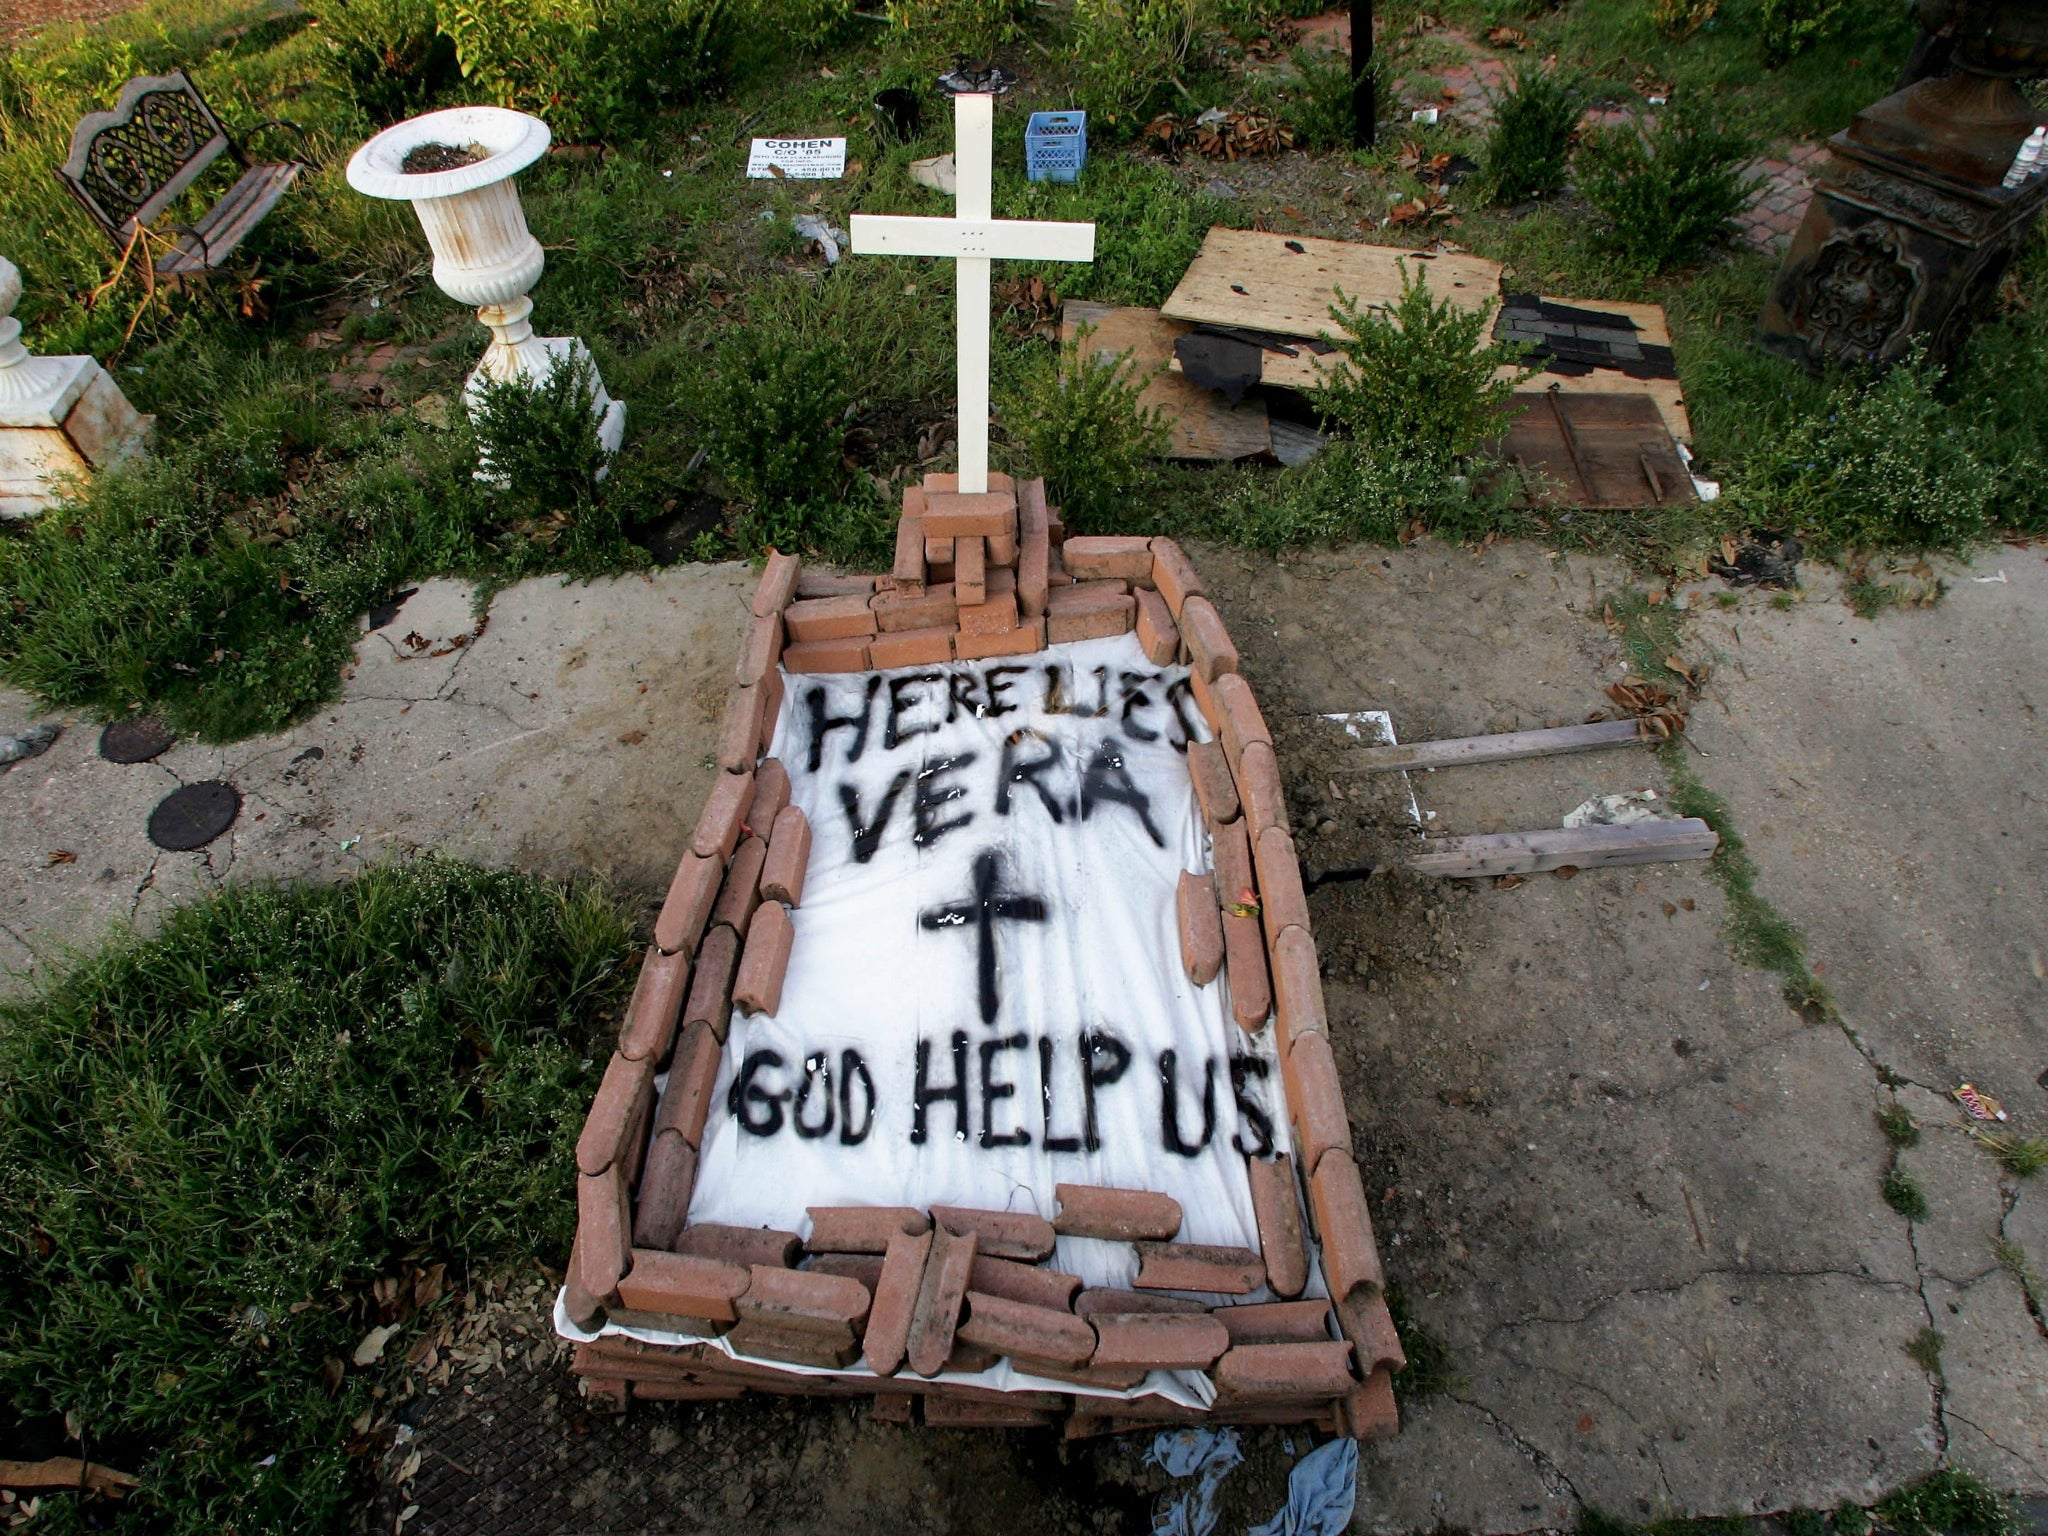 new orleans hurricane katrina essay Collection of essays looks at hurricane katrina's impact hurricane katrina the days after katrina, for those in new orleans and across south.